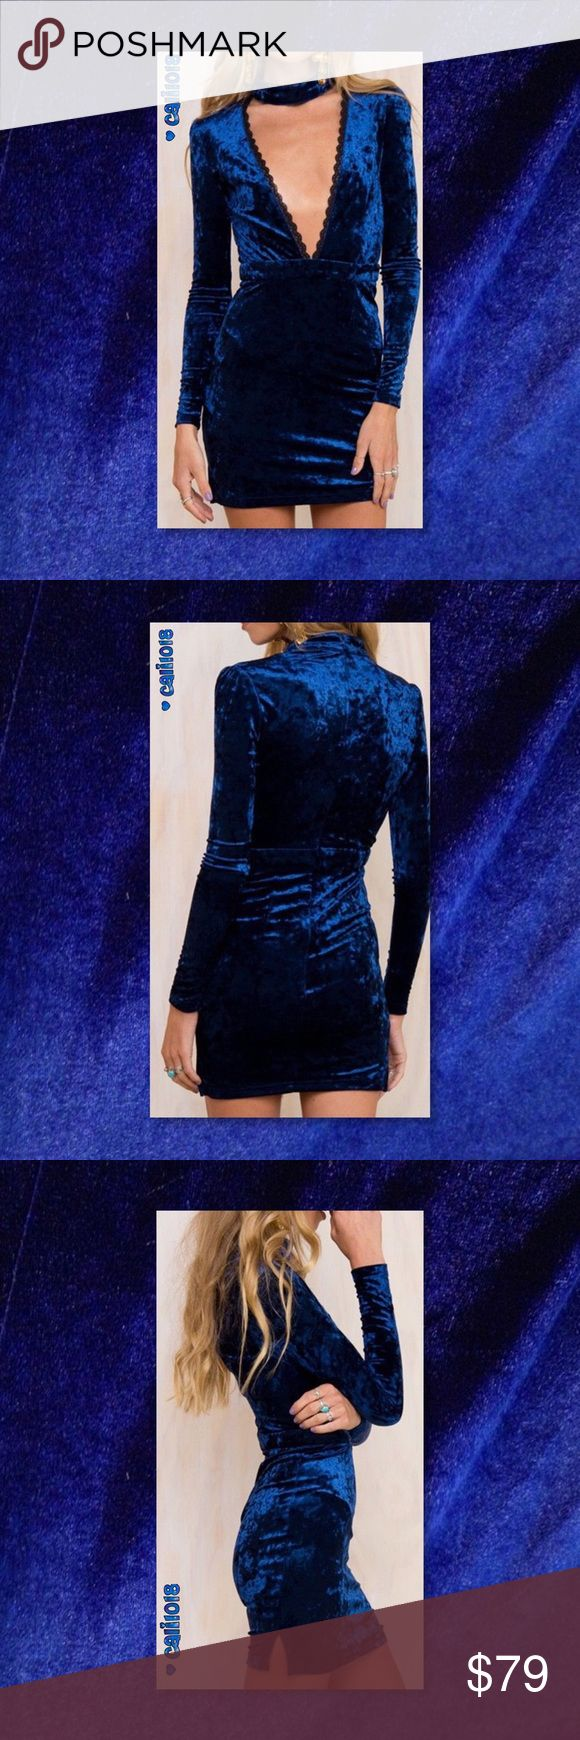 JUST IN🆕Royal Blue Velvet Choker Style Mini Dress New Royal Blue Velvet Plunging Neckline Choker Style Mini Dress 100% Brand New and High Quality!!